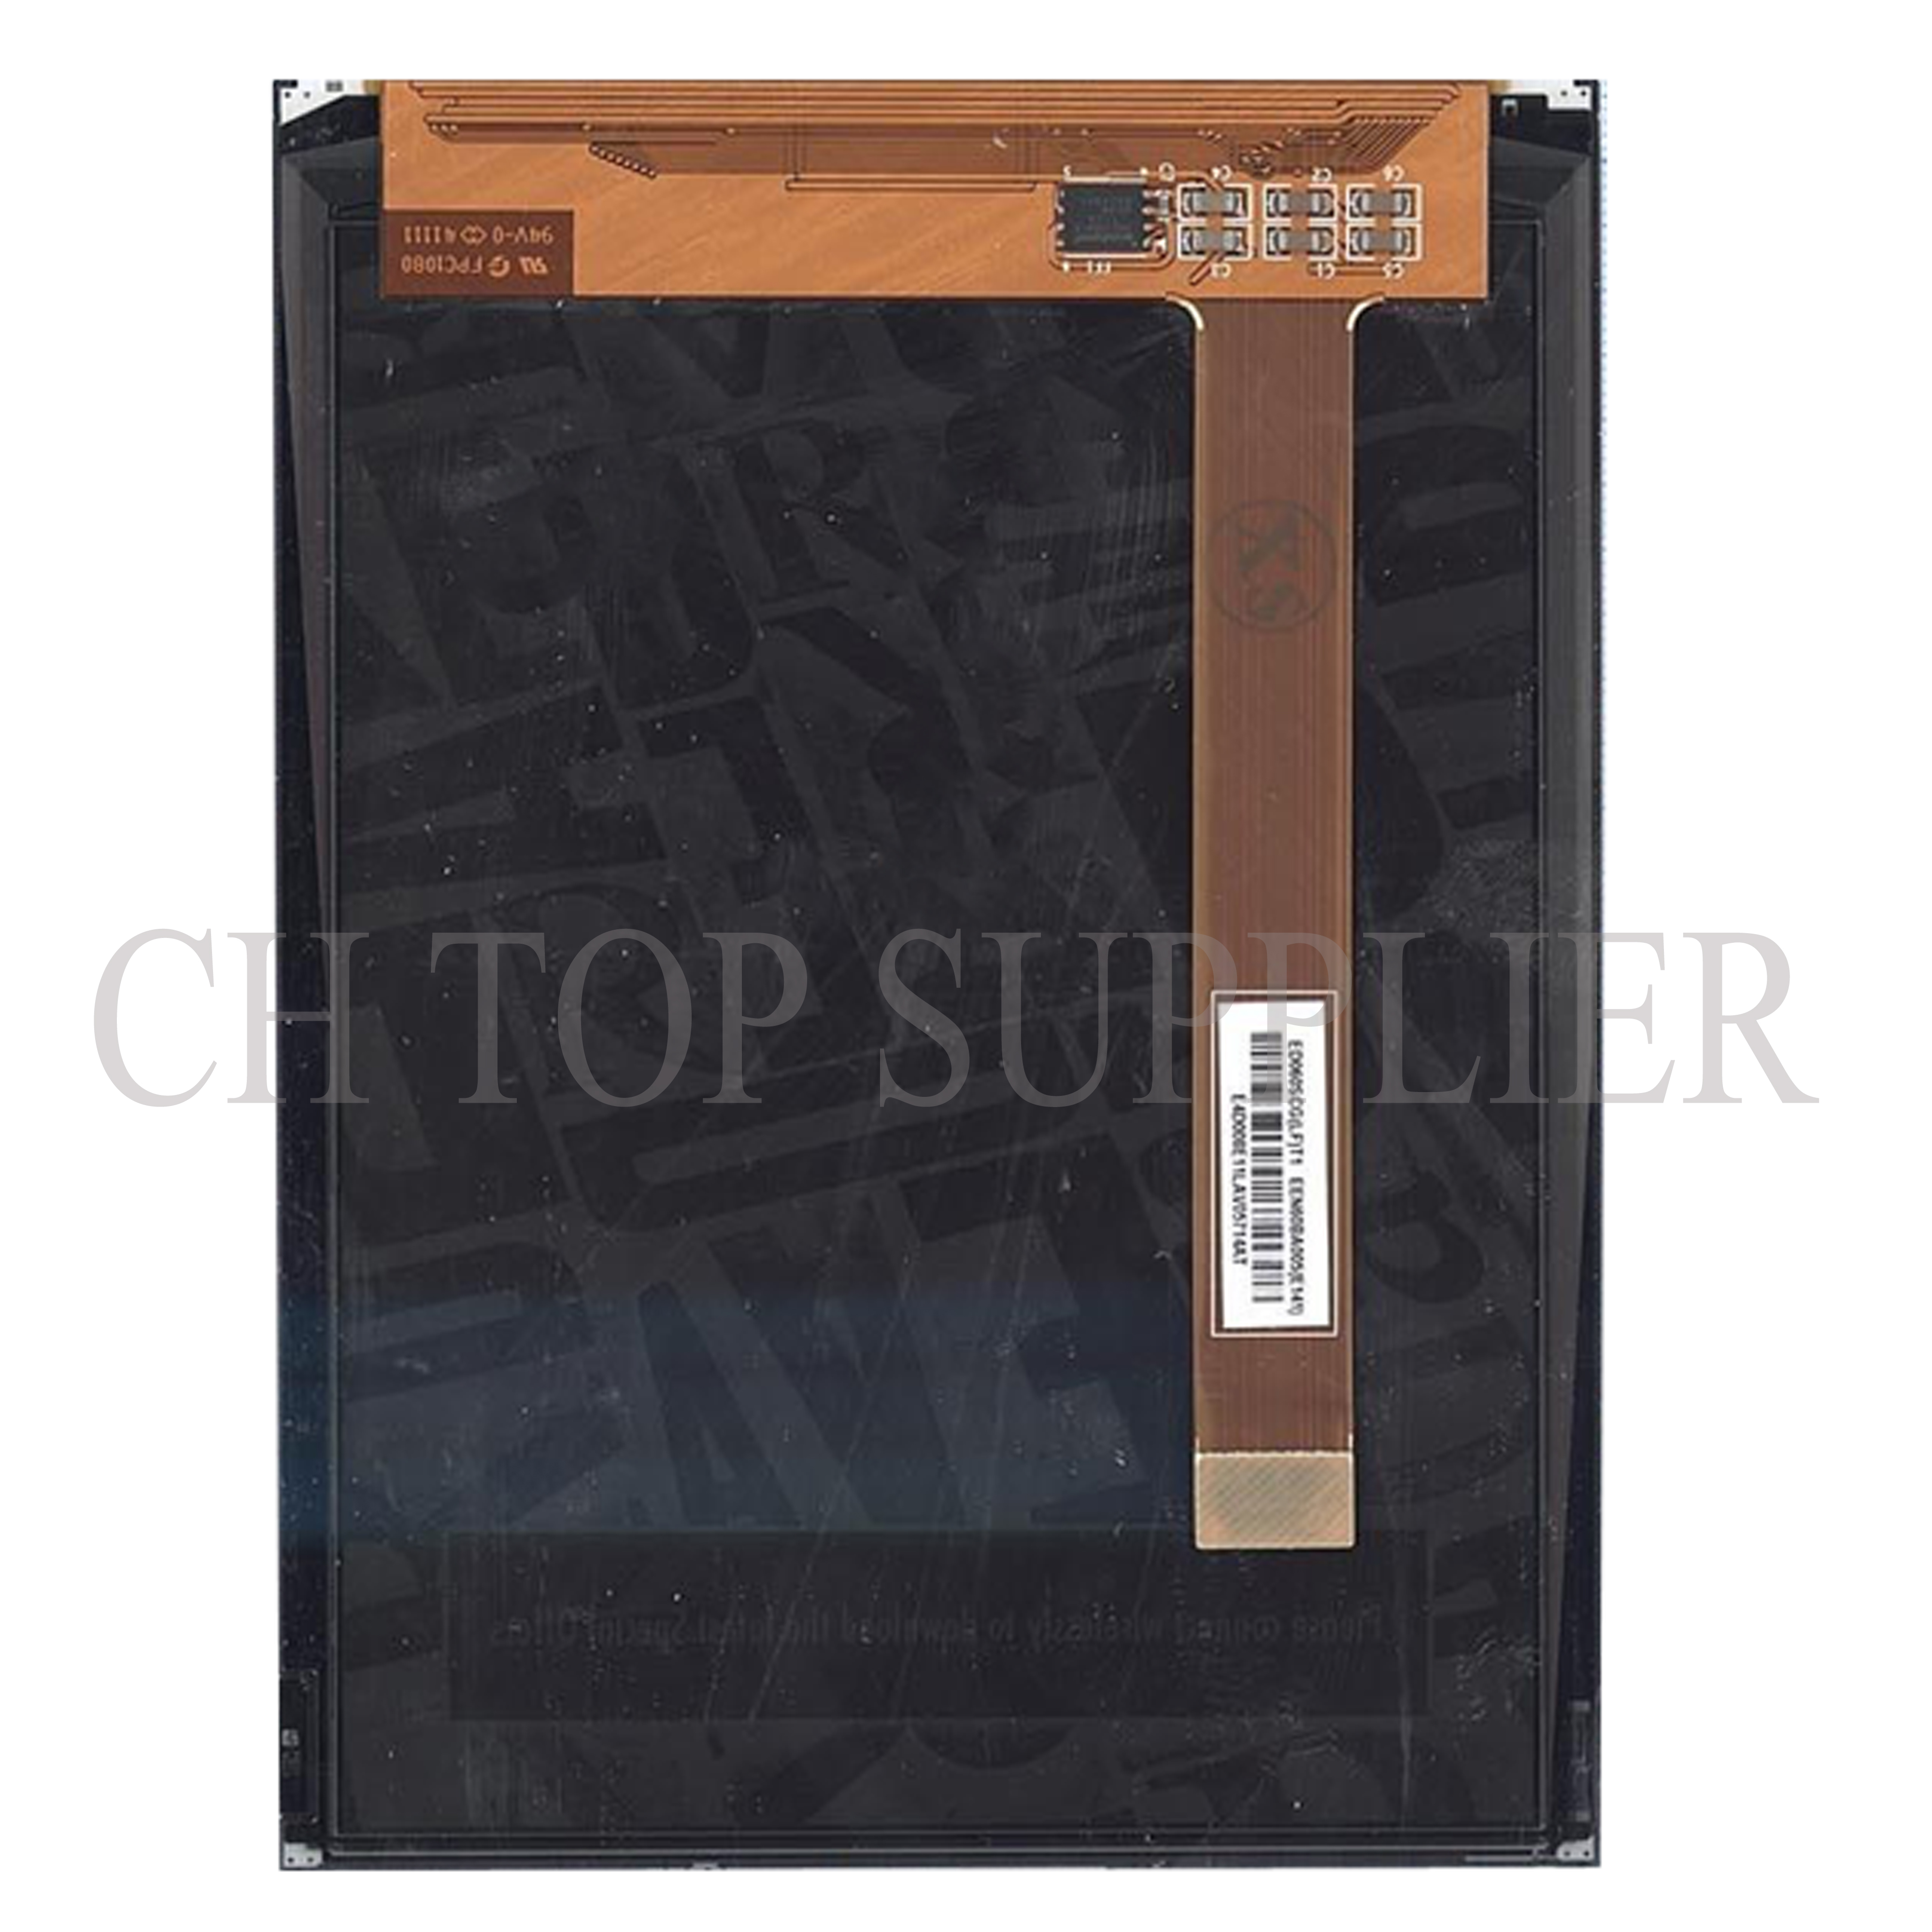 6 Inch Screen Lcd Display For PocketBook 614 Basic 3 E-Readers Matrix For Pocketbook 614 Plus No Backlight